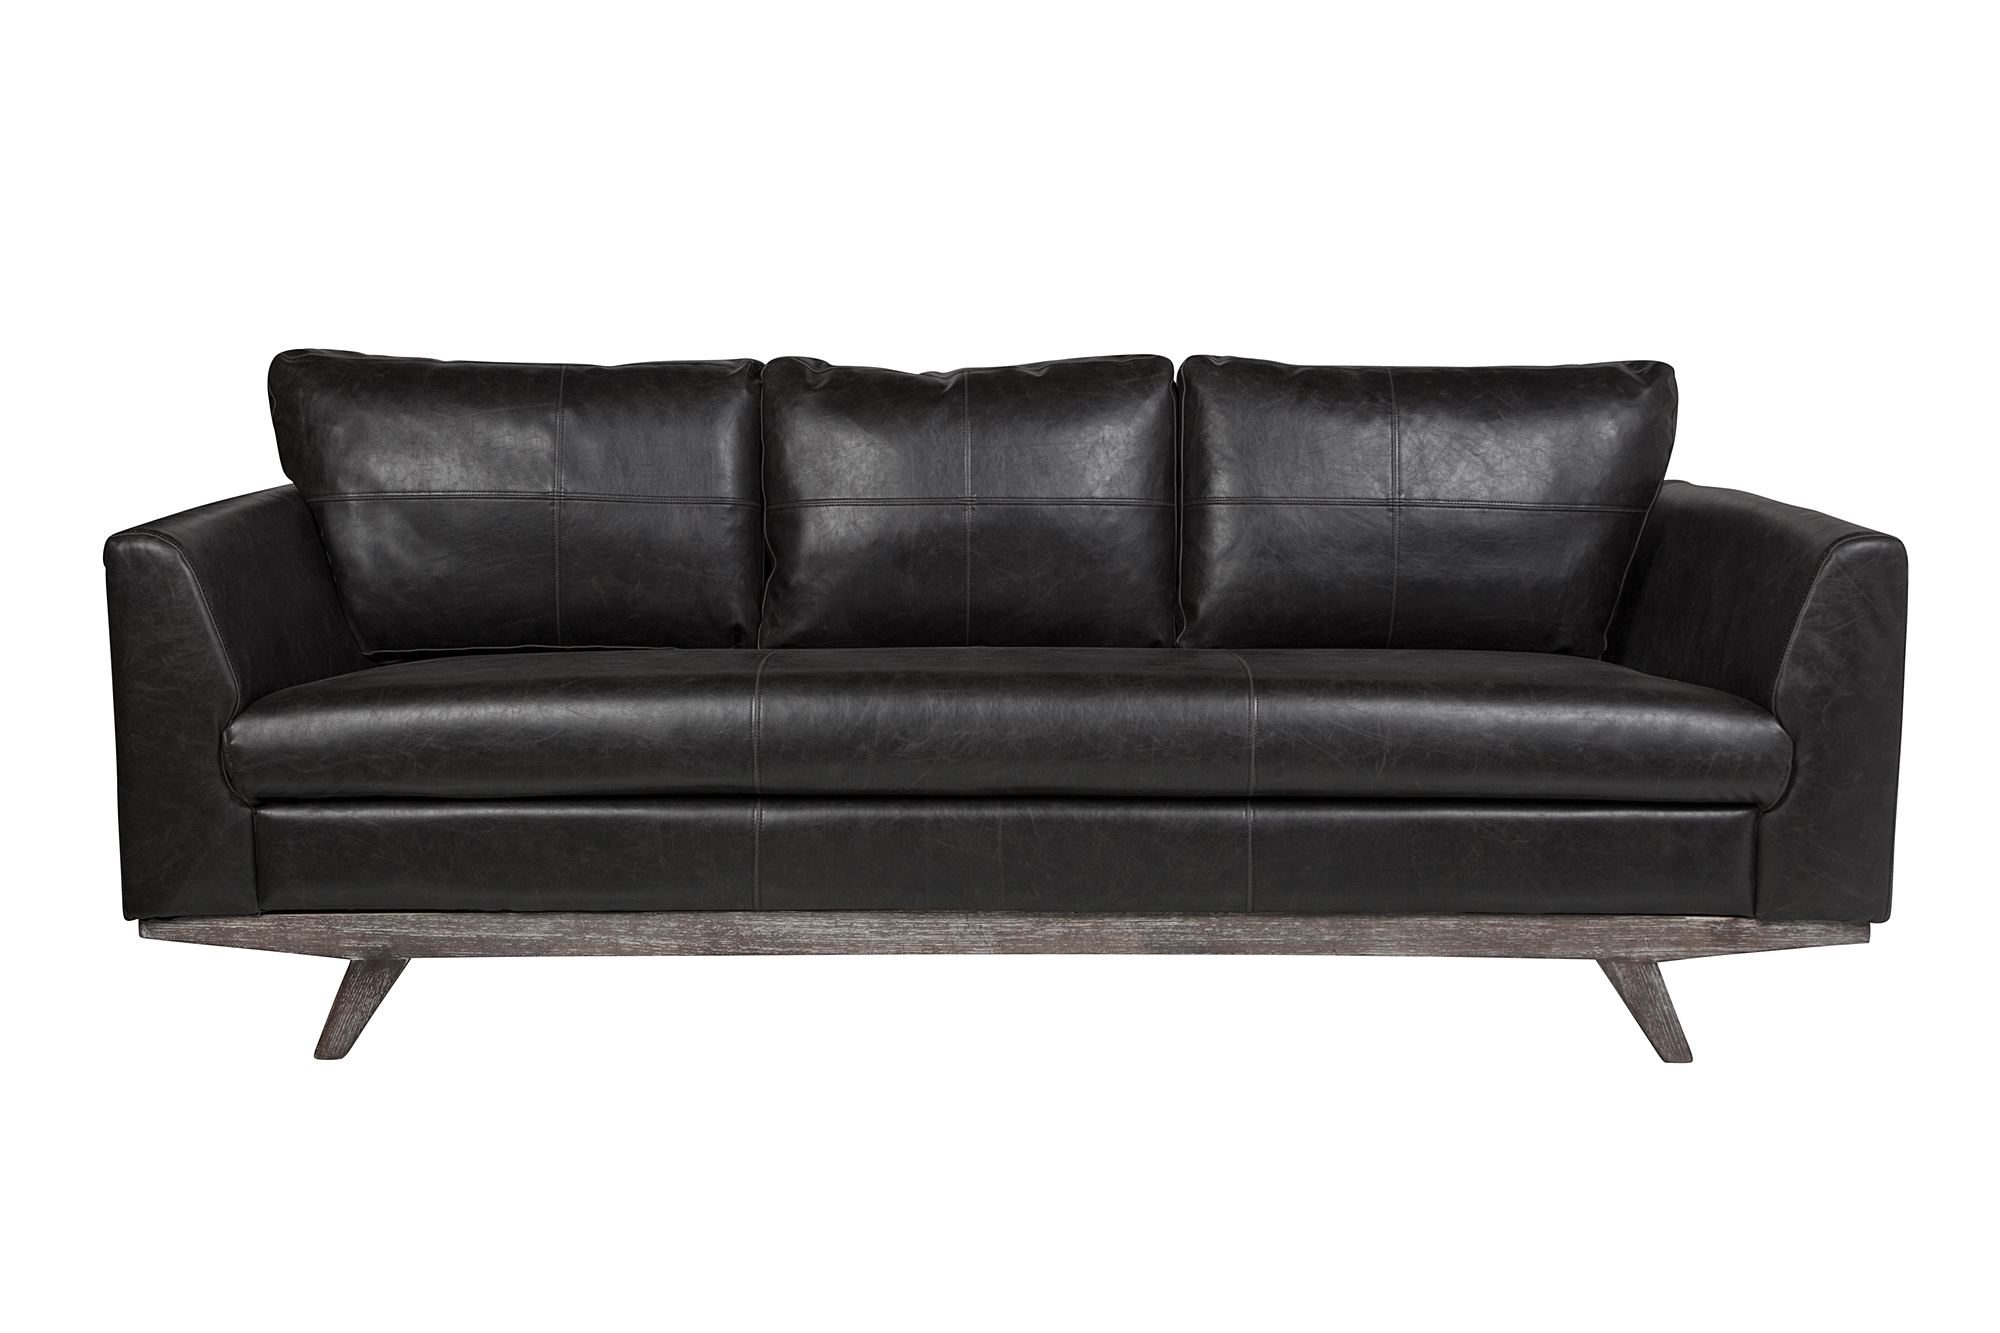 Maxwell 3 Seater Leather Sofa Larger Photo Email A Friend